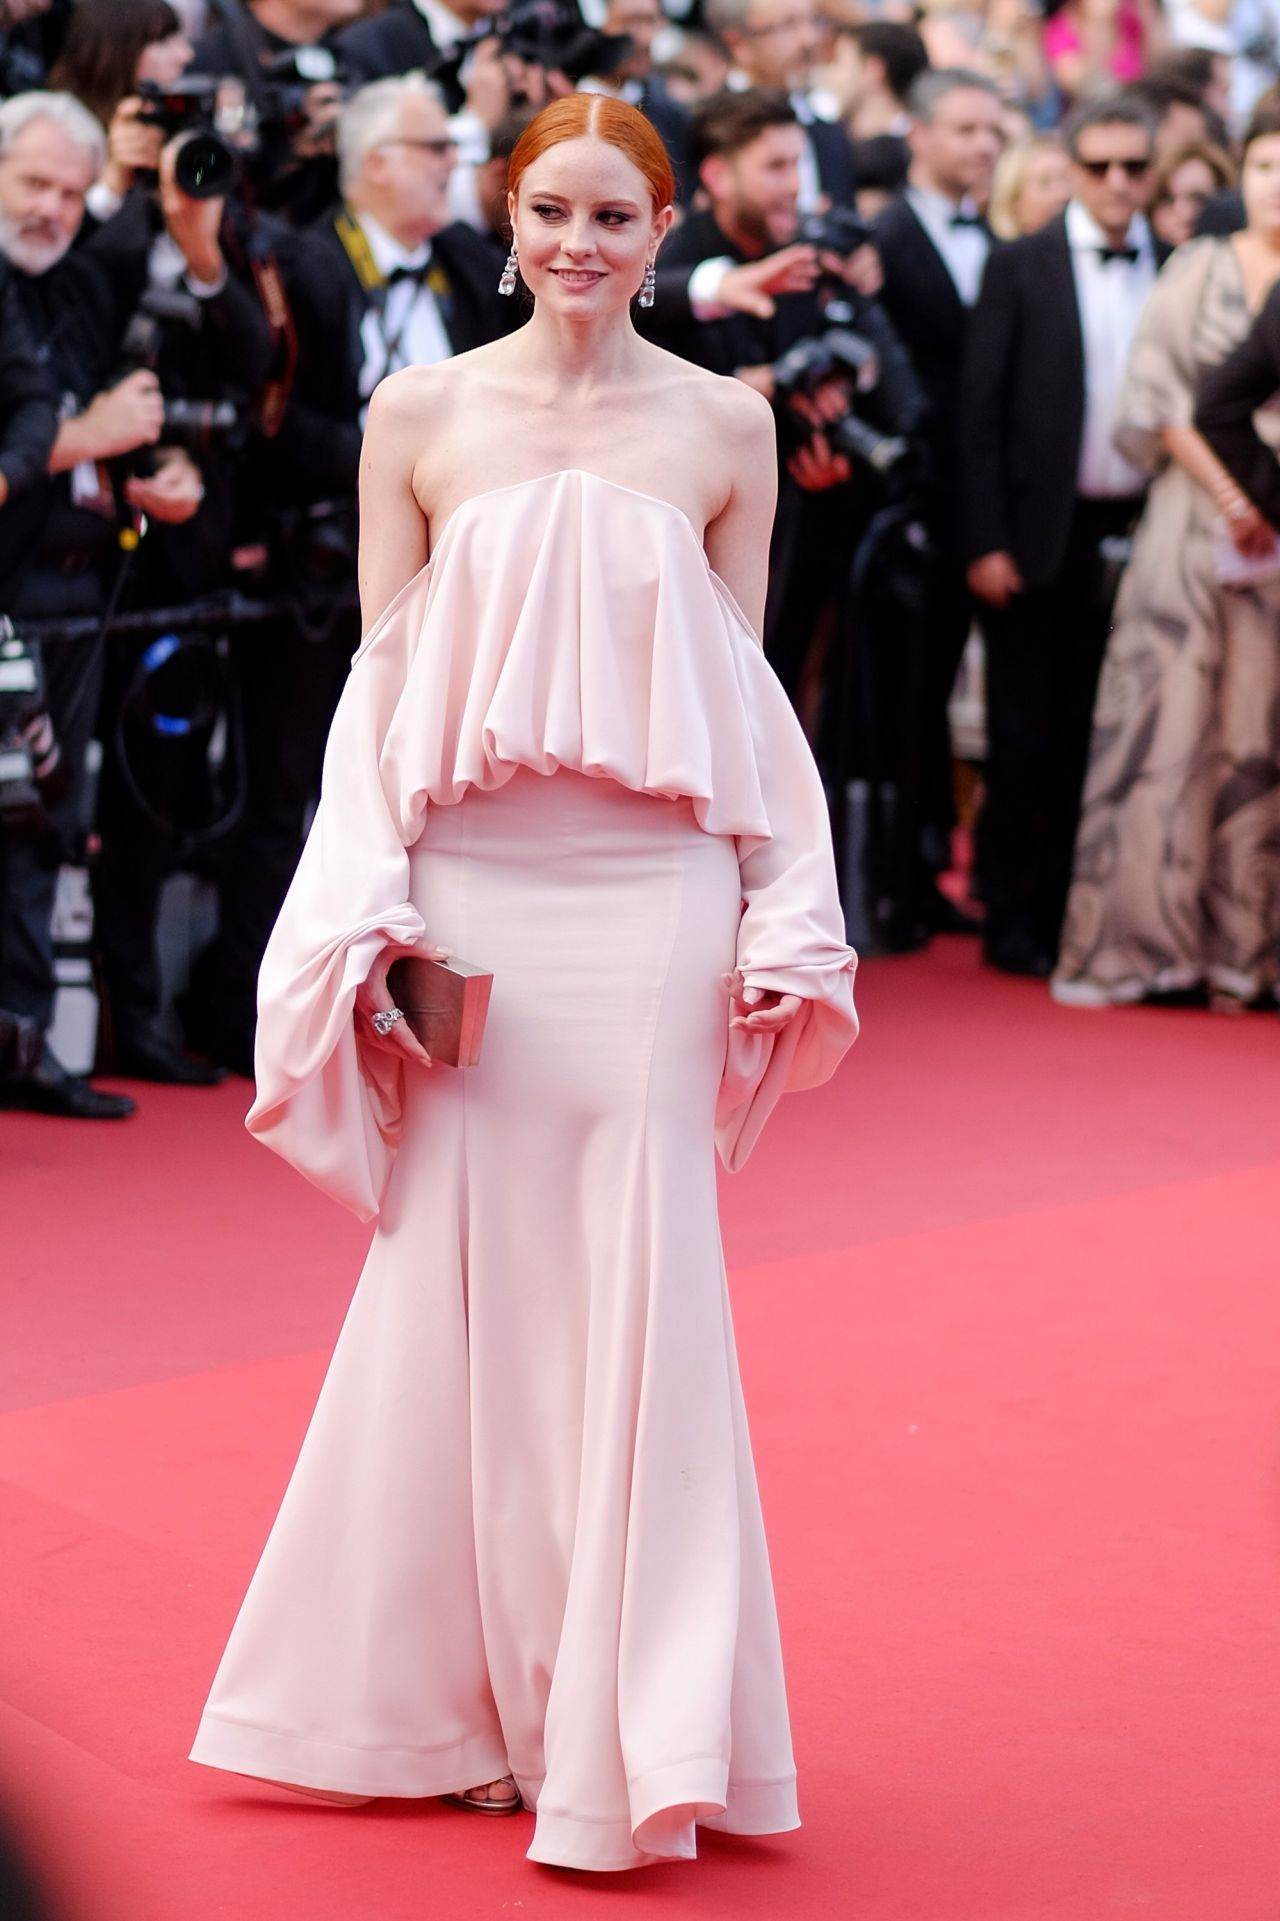 Cannes 2017 Heidi Klum Continues A Cannes Tradition In: Barbara Meier At 70th Anniversary